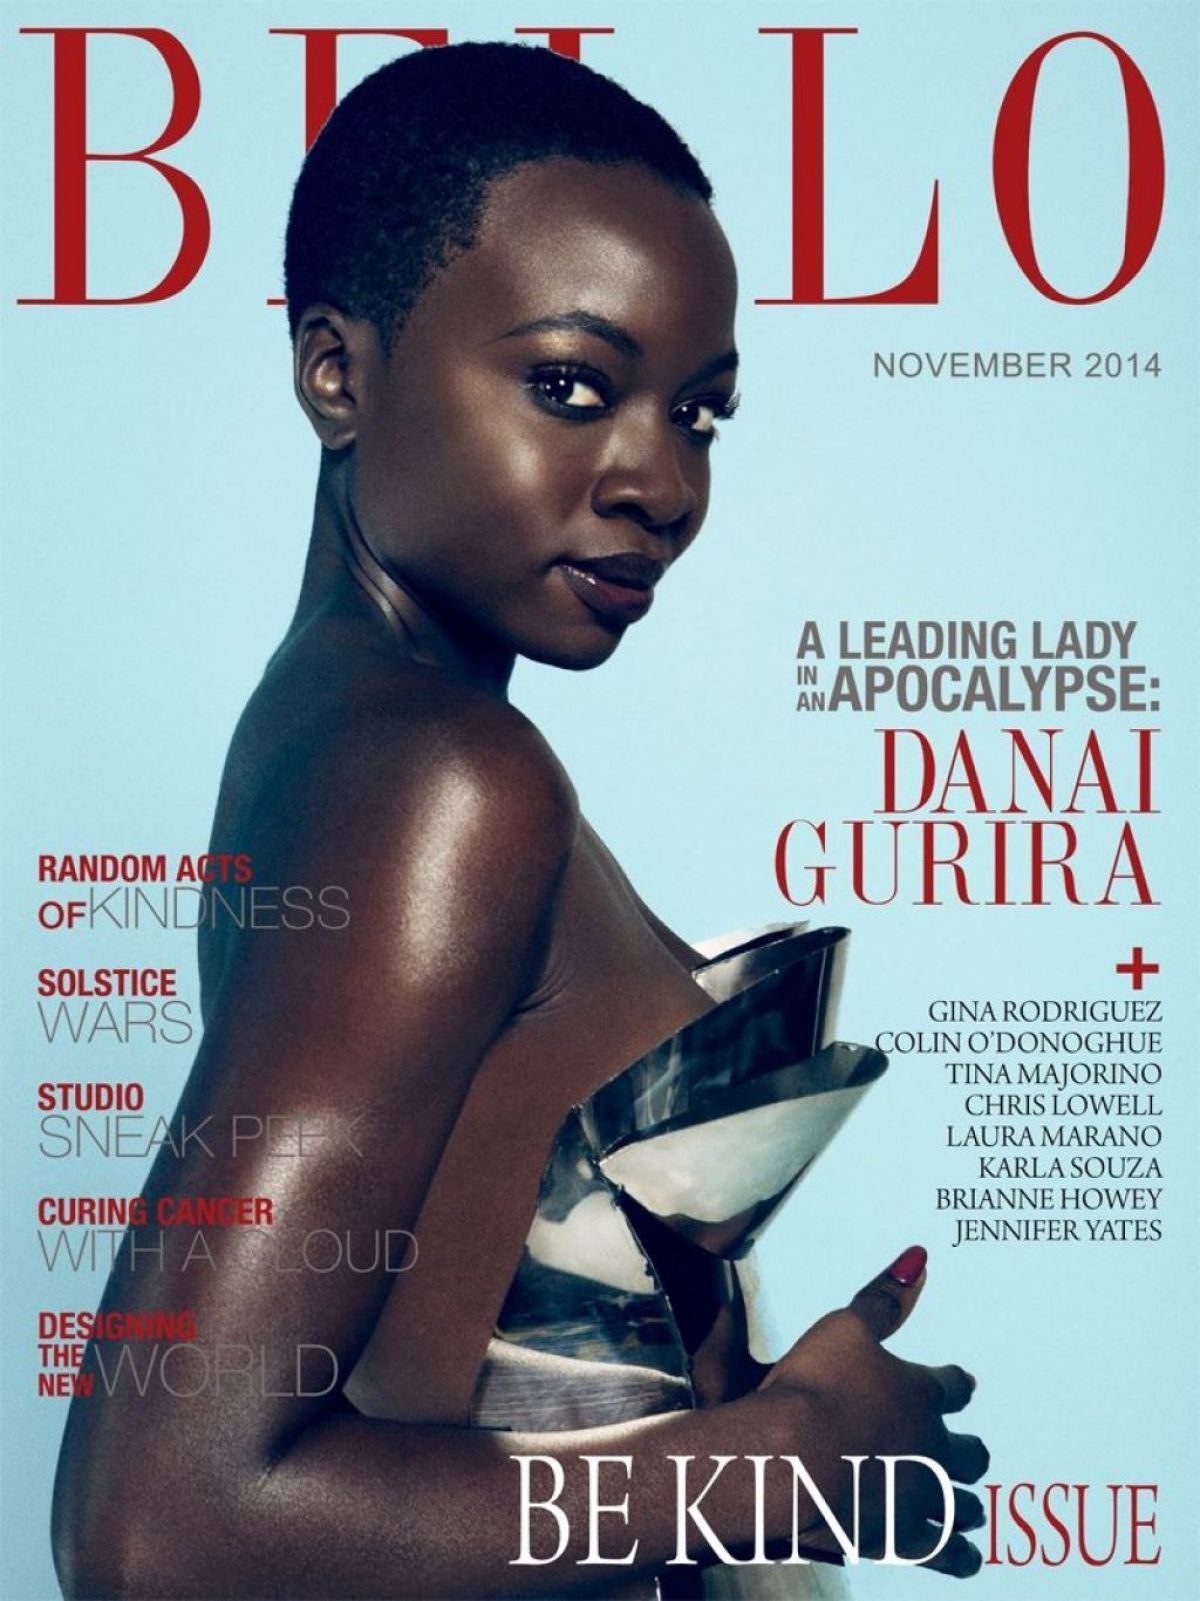 DANAI GURIRA in Bello Magazine, November 2014 Issue